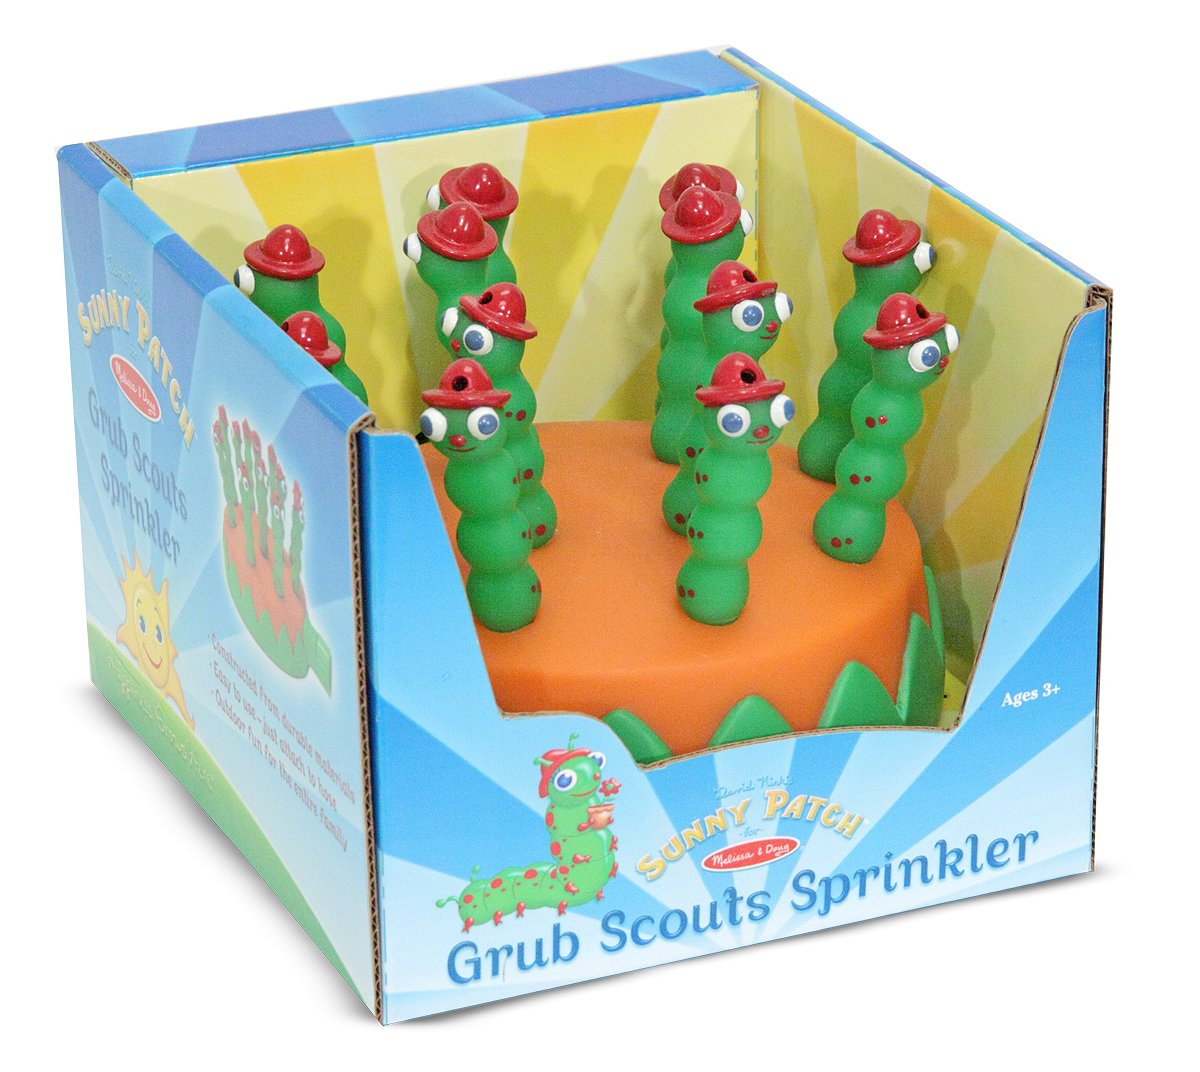 Melissa & Doug Sunny Patch Grub Scouts Sprinkler Toy With Hose Attachment